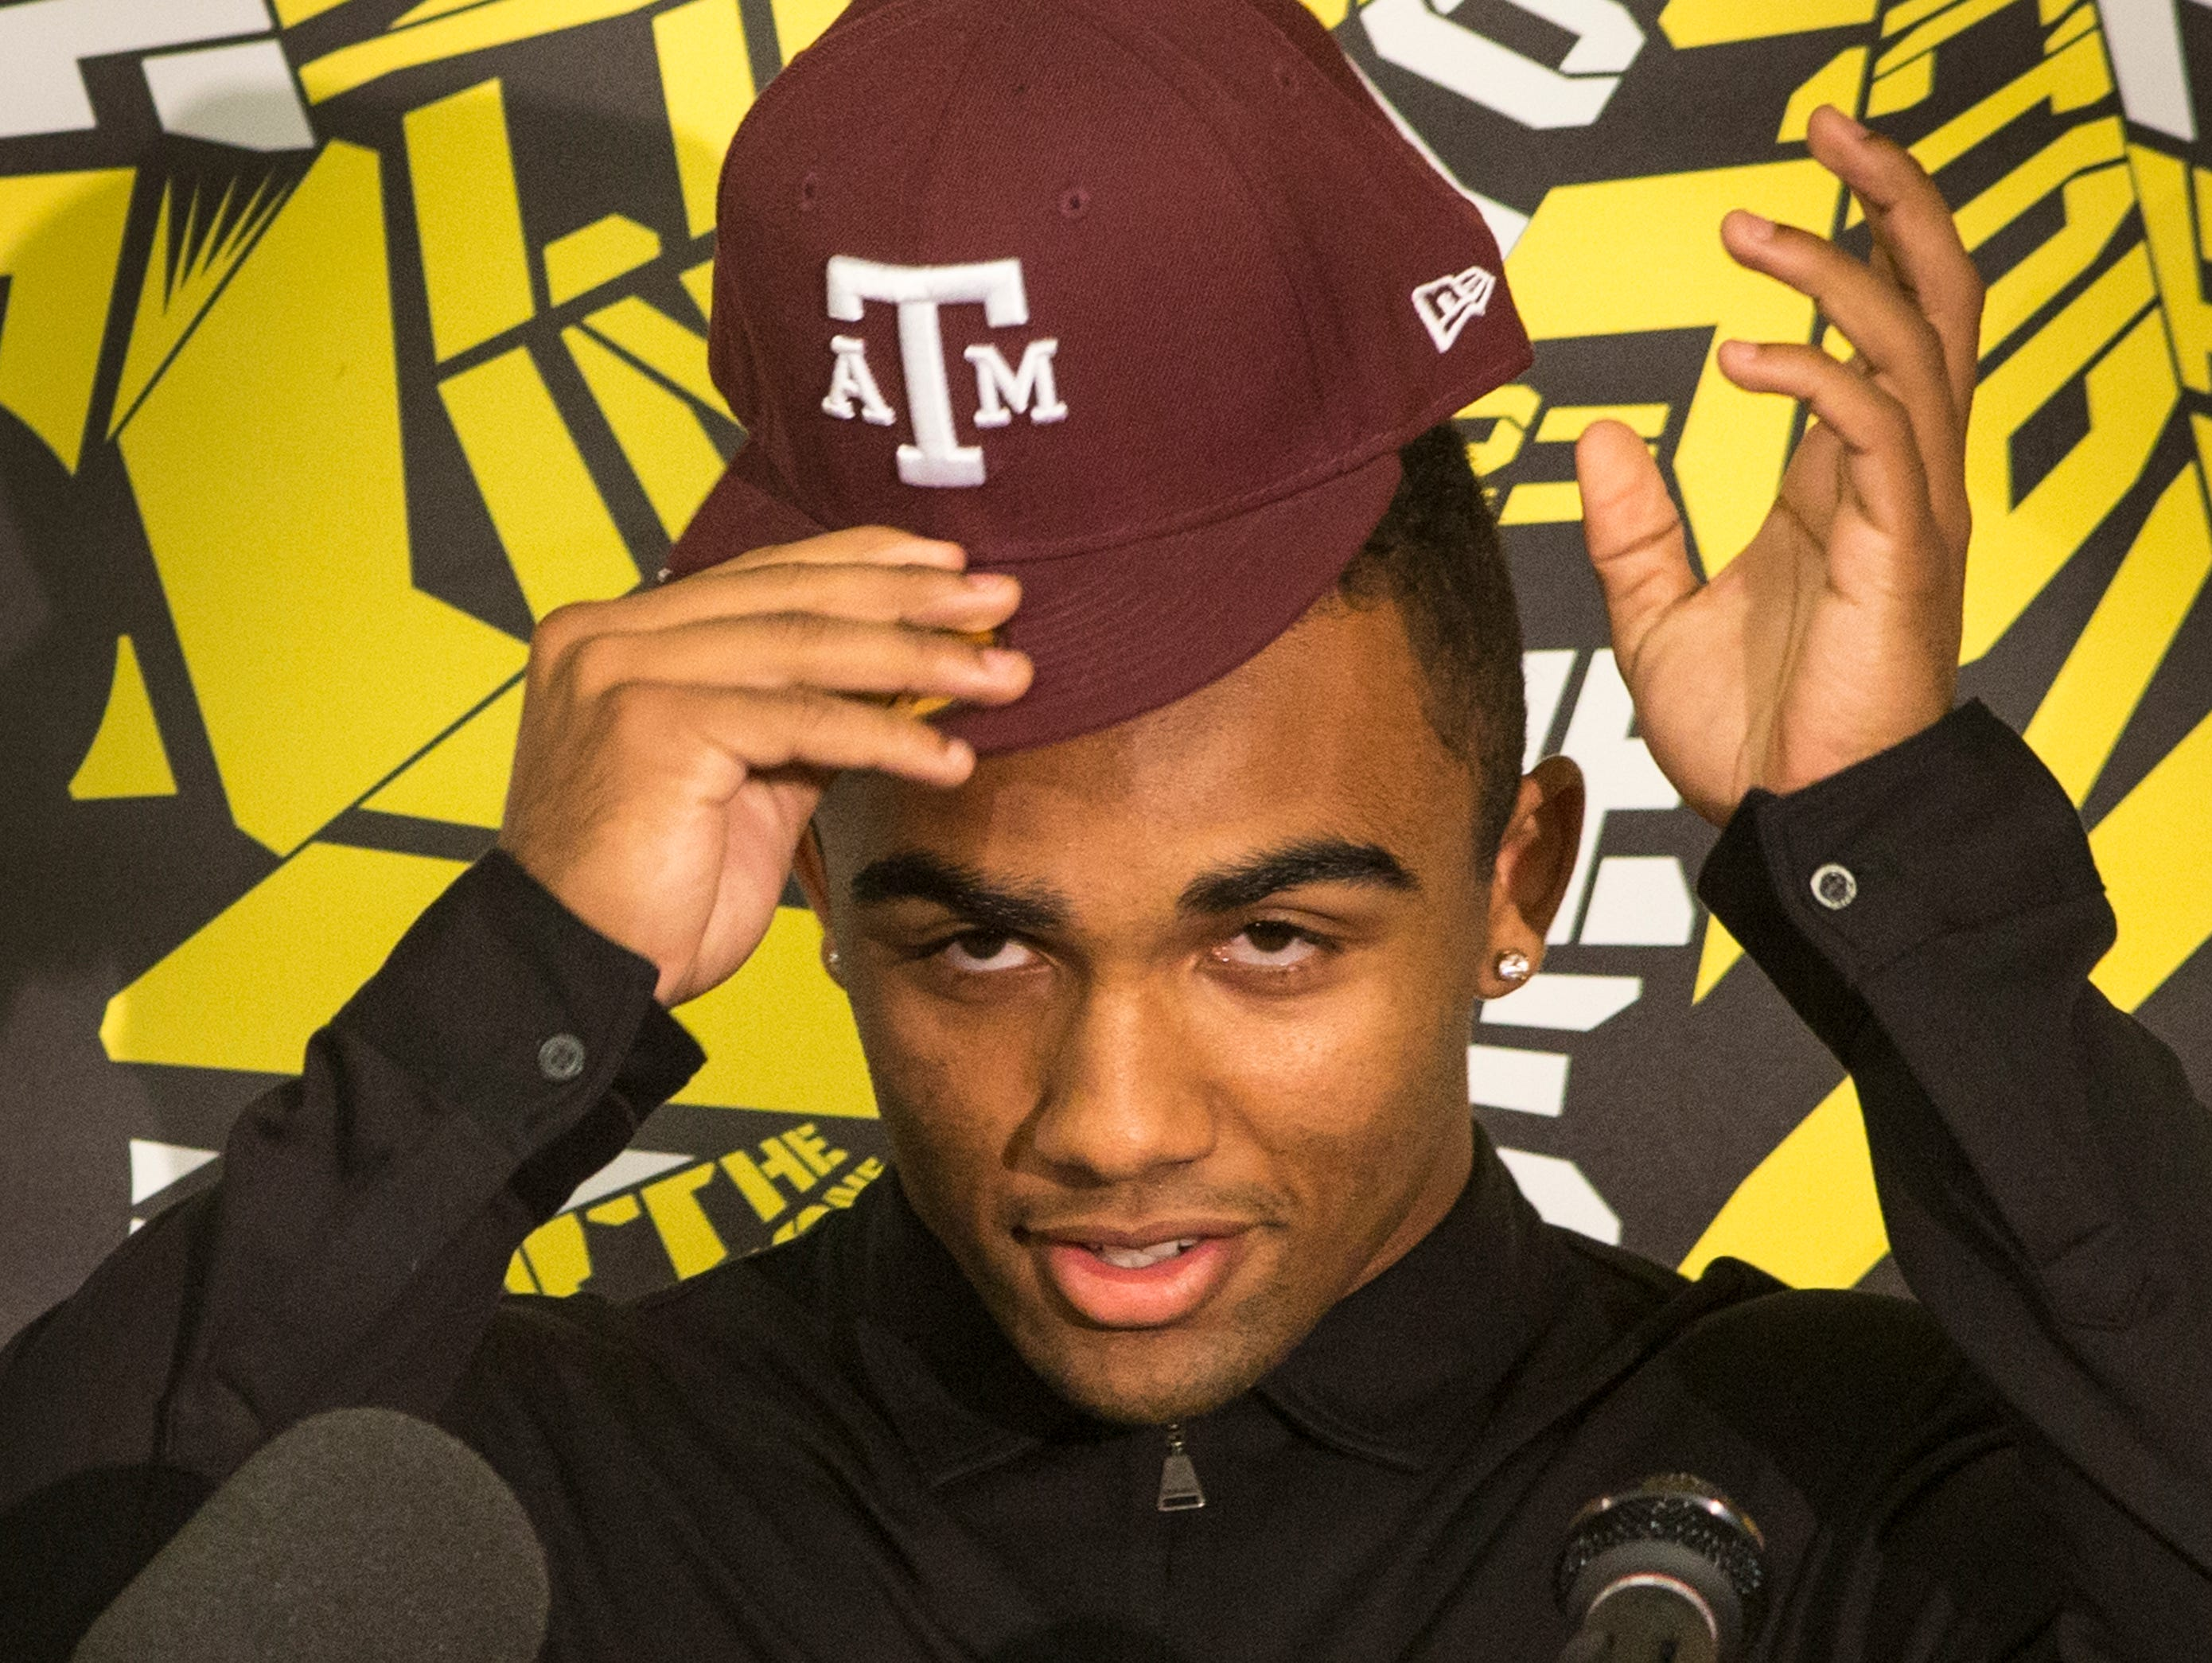 Saguaro standout football player Christian Kirk dons a Texas A&M hat as he announces his college commitment at his high school on Dec. 17, 2014.